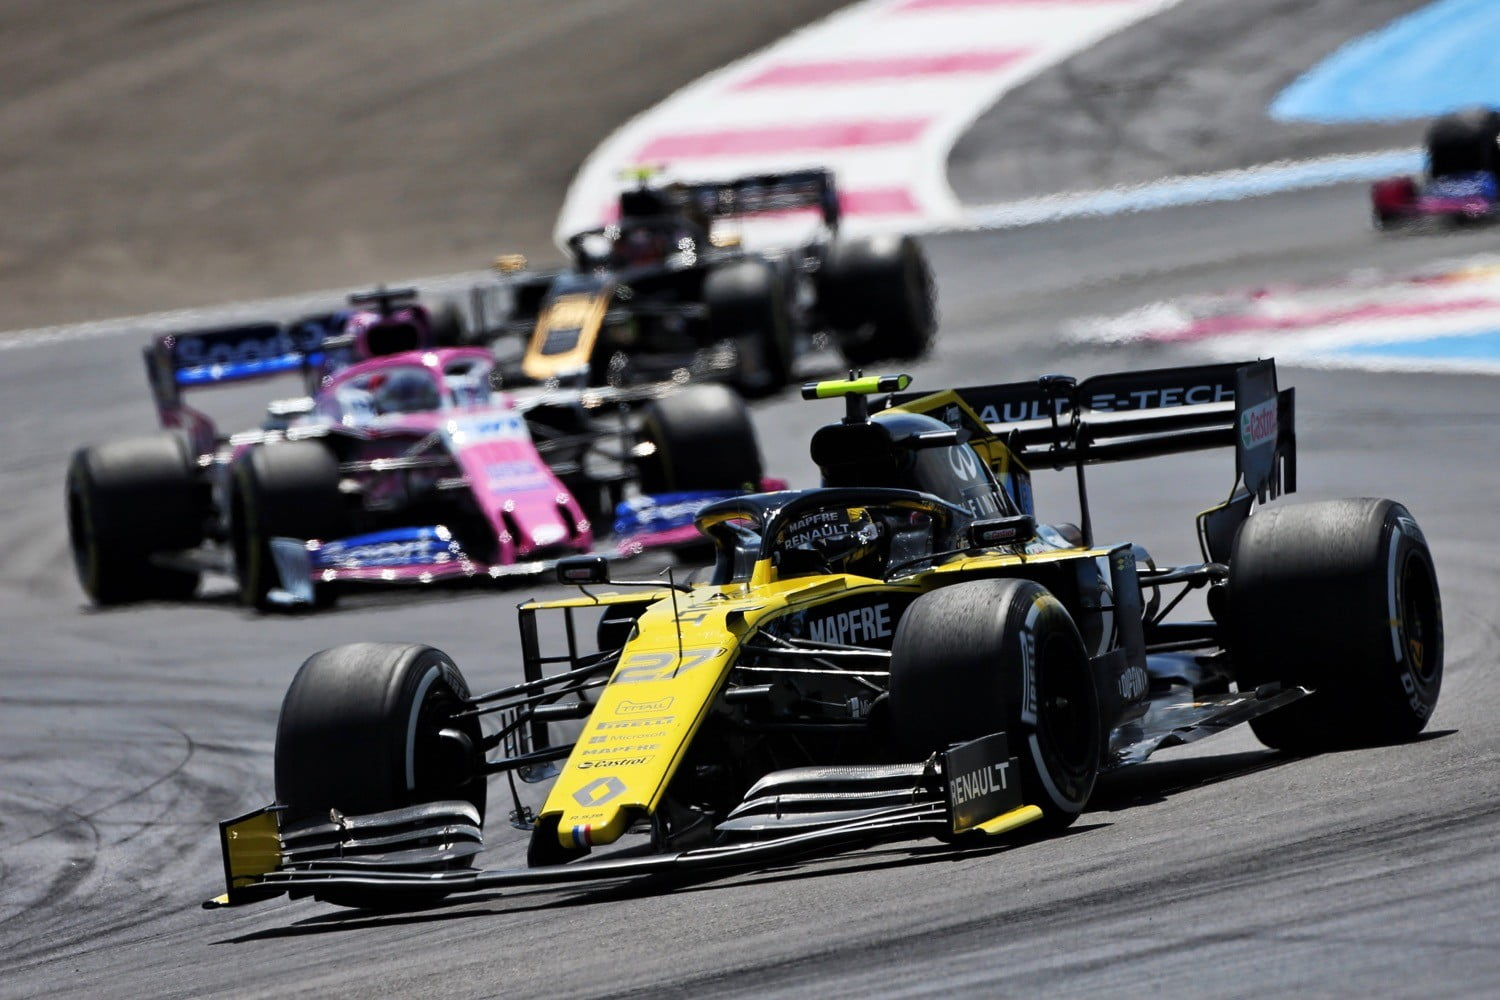 F1 has plans to race the world's first net zero carbon engine in 2030